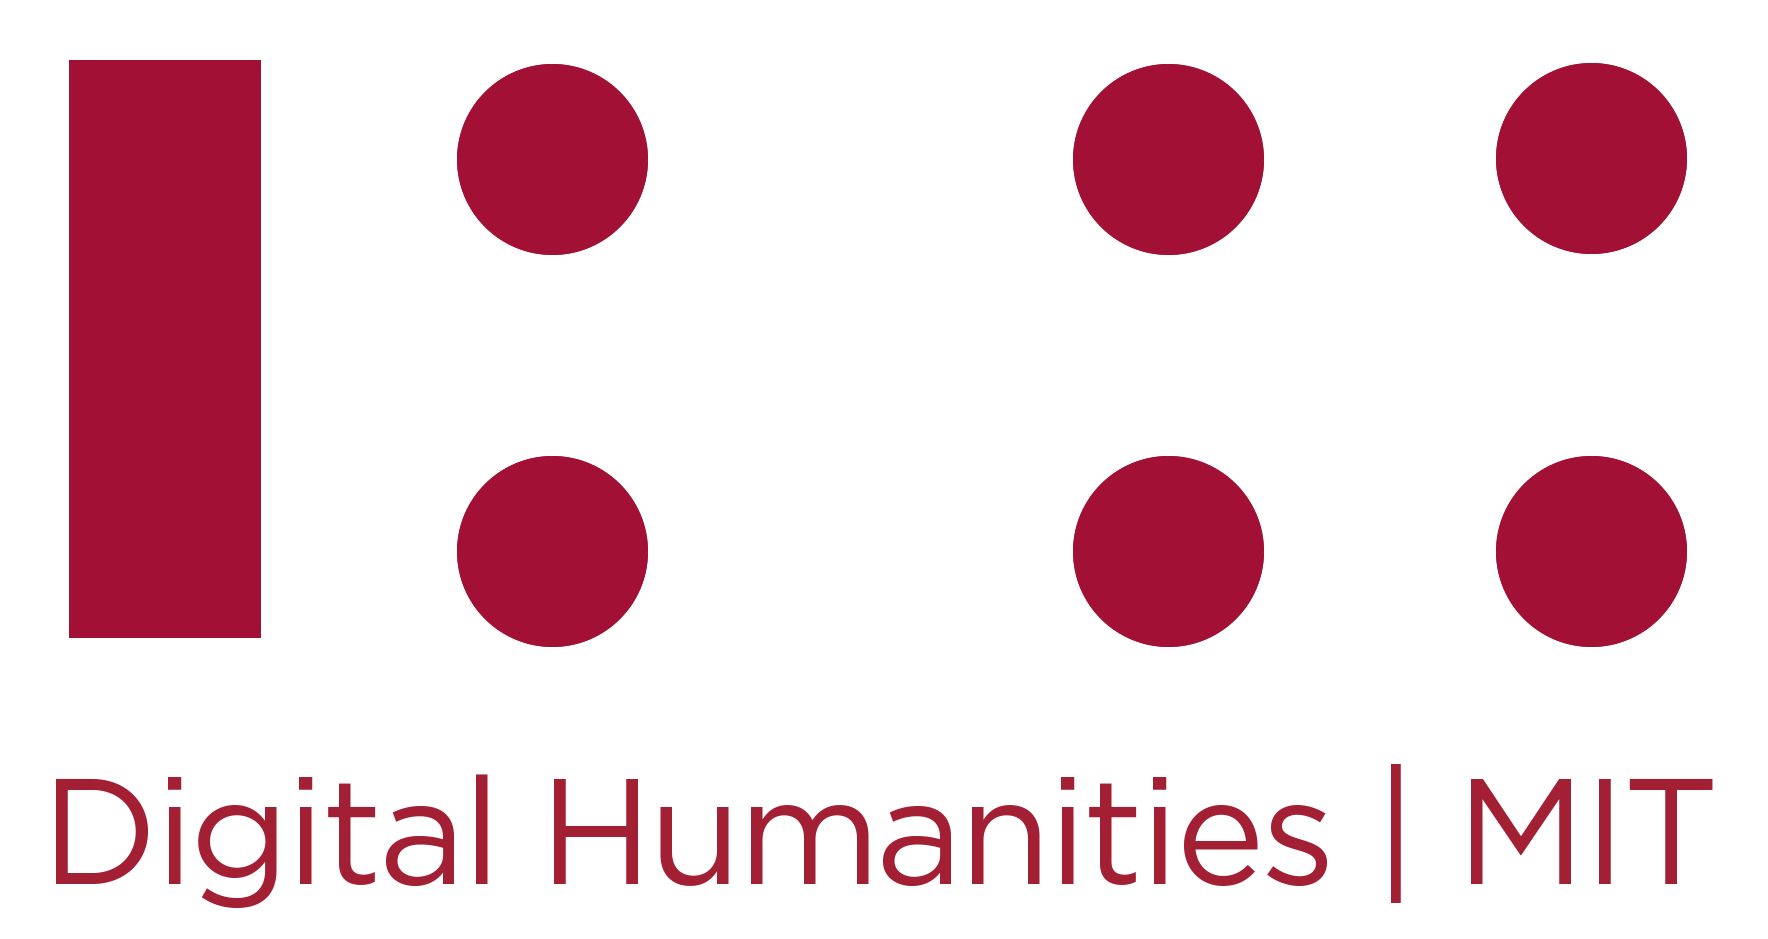 Digital Humanities at MIT Logo